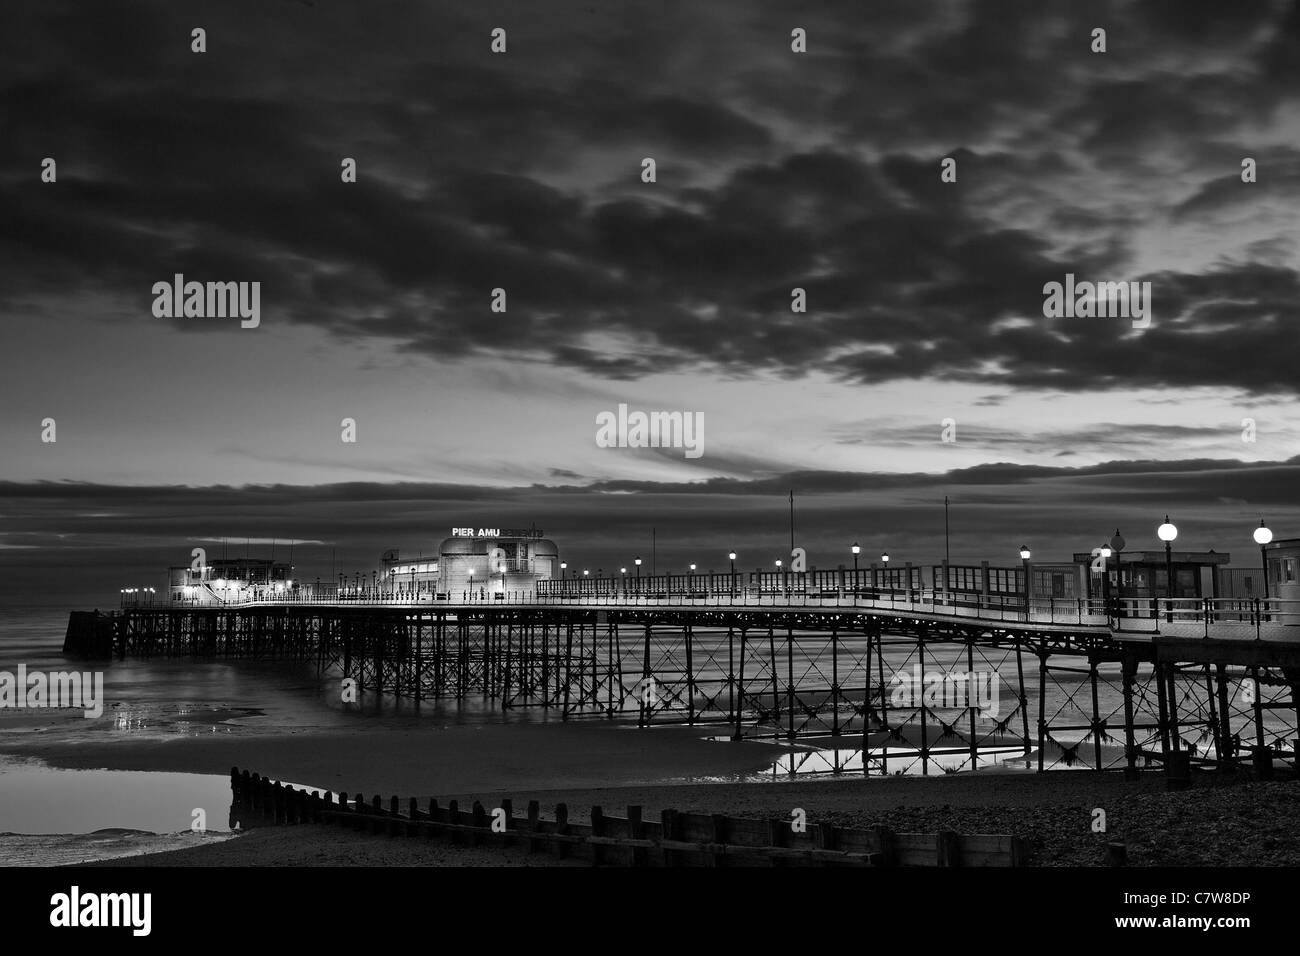 worthing pier black and white stock photos & images - alamy